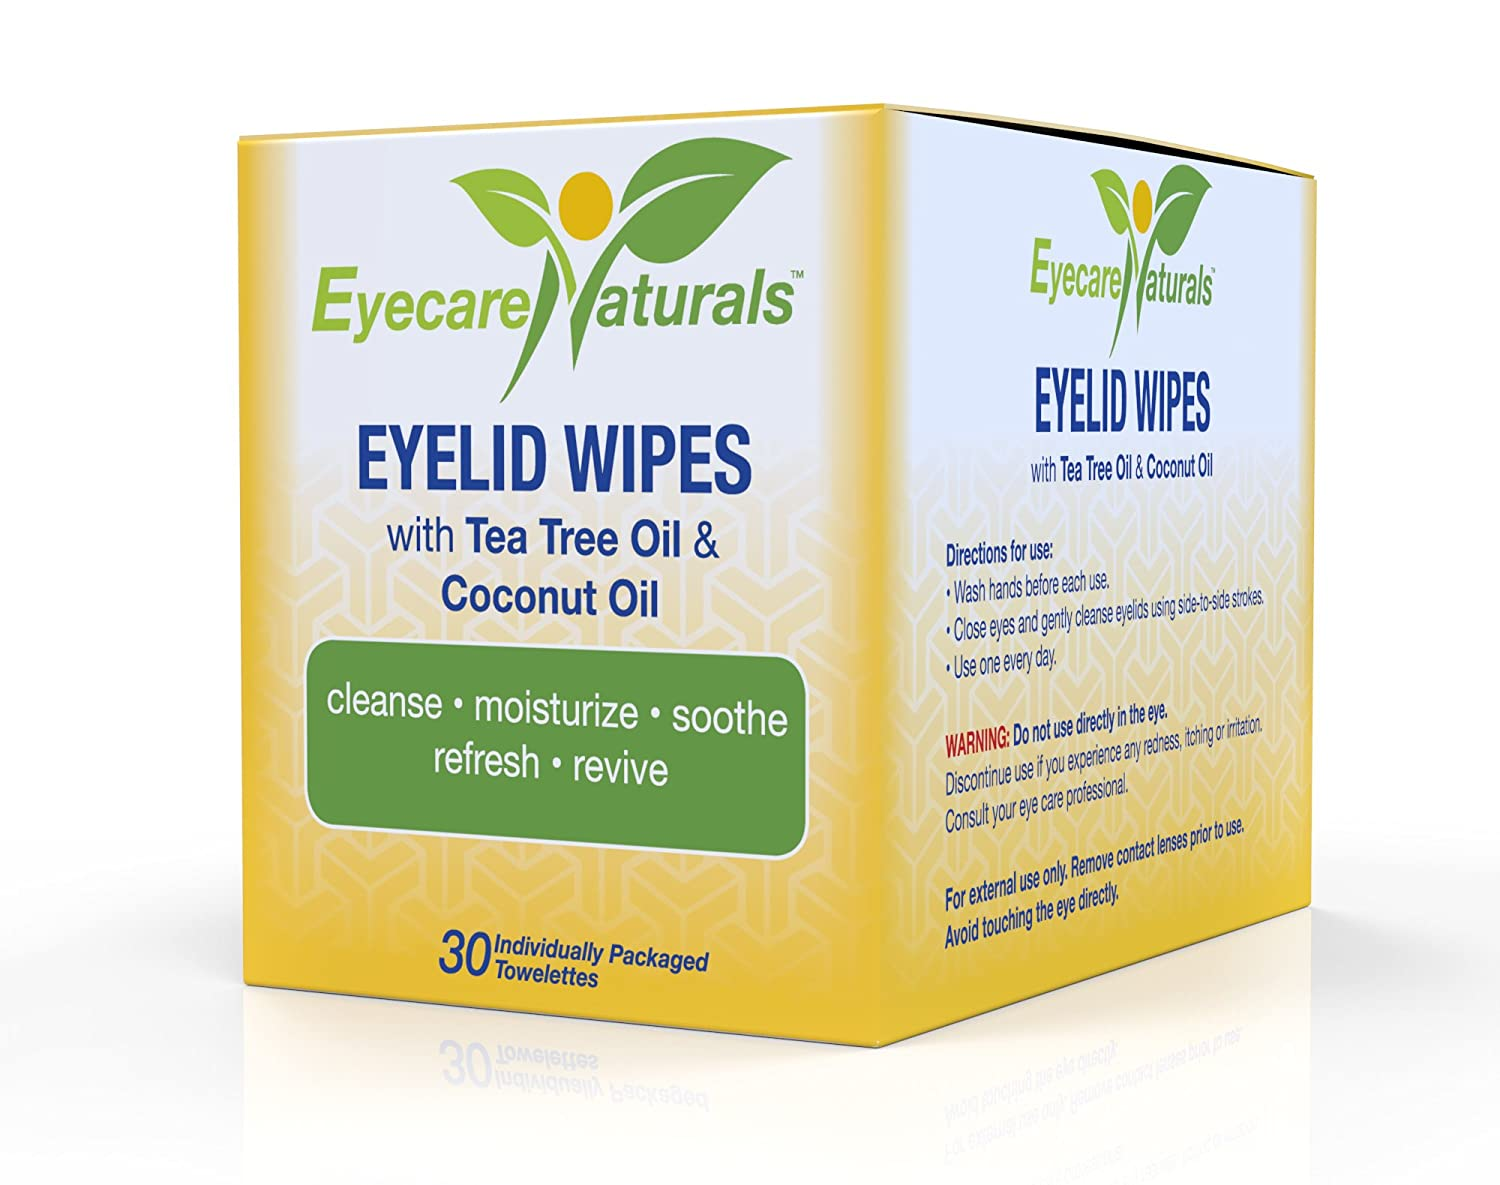 Eyecare Naturals Tea Tree Oil Eyelid Wipes With Coconut Oil - Dry Eyelid Wipes No Rinse Natural Essential Oil Cleansing Eye Wipes - Daily Eyelid Makeup Remover - Box of 30 Individually Wrapped Wipes